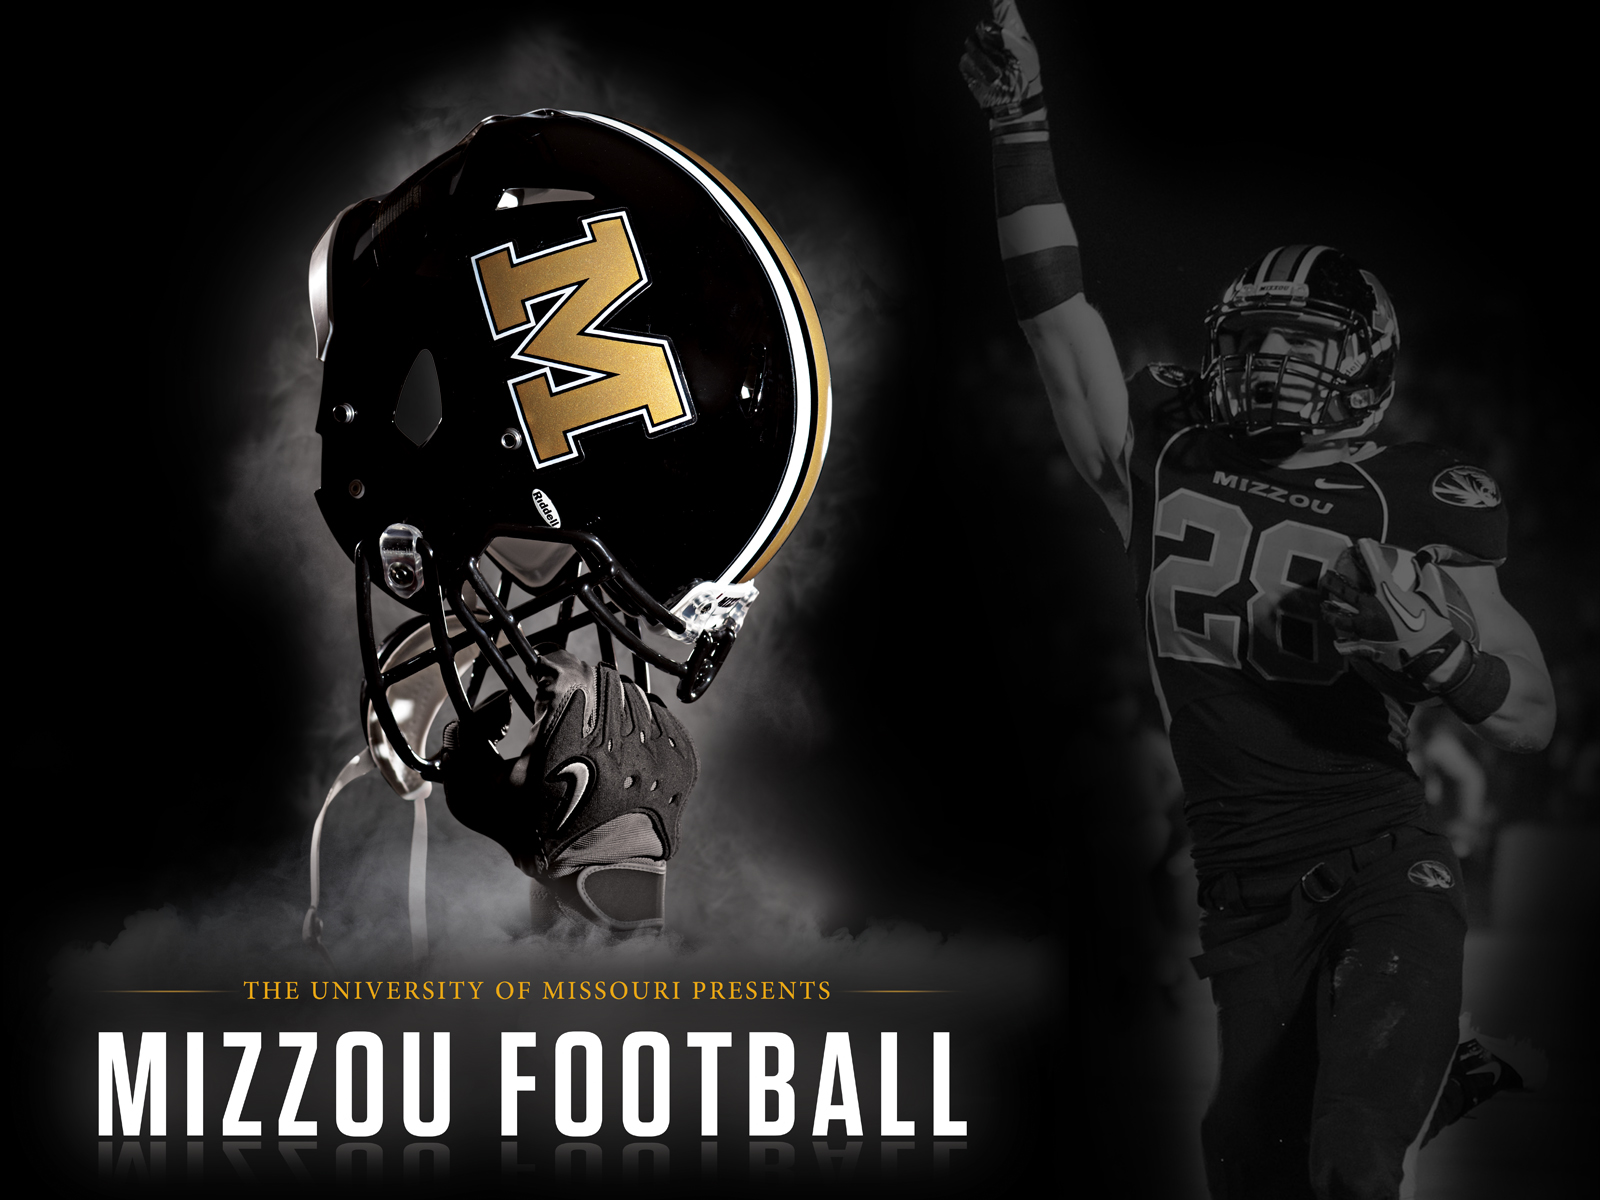 Mizzou Football 2011 Poster Wallpaper 1600x1200px 1600x1200